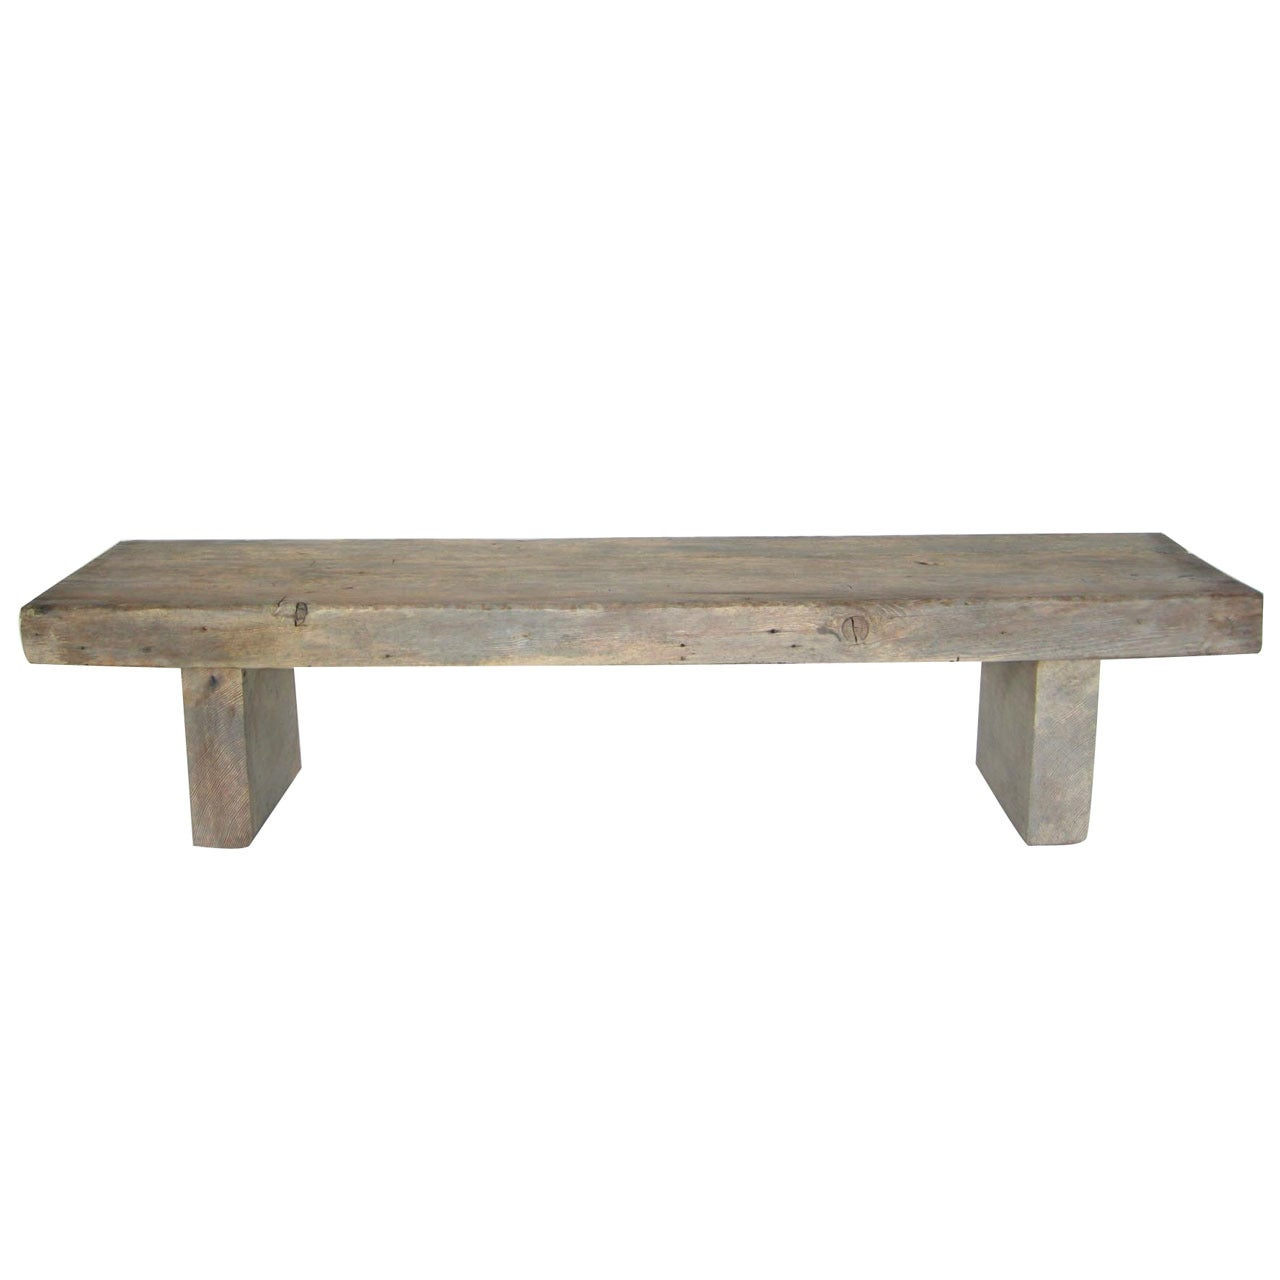 Custom Reclaimed Wood Bench in Driftwood Finish by Dos Gallos Studio